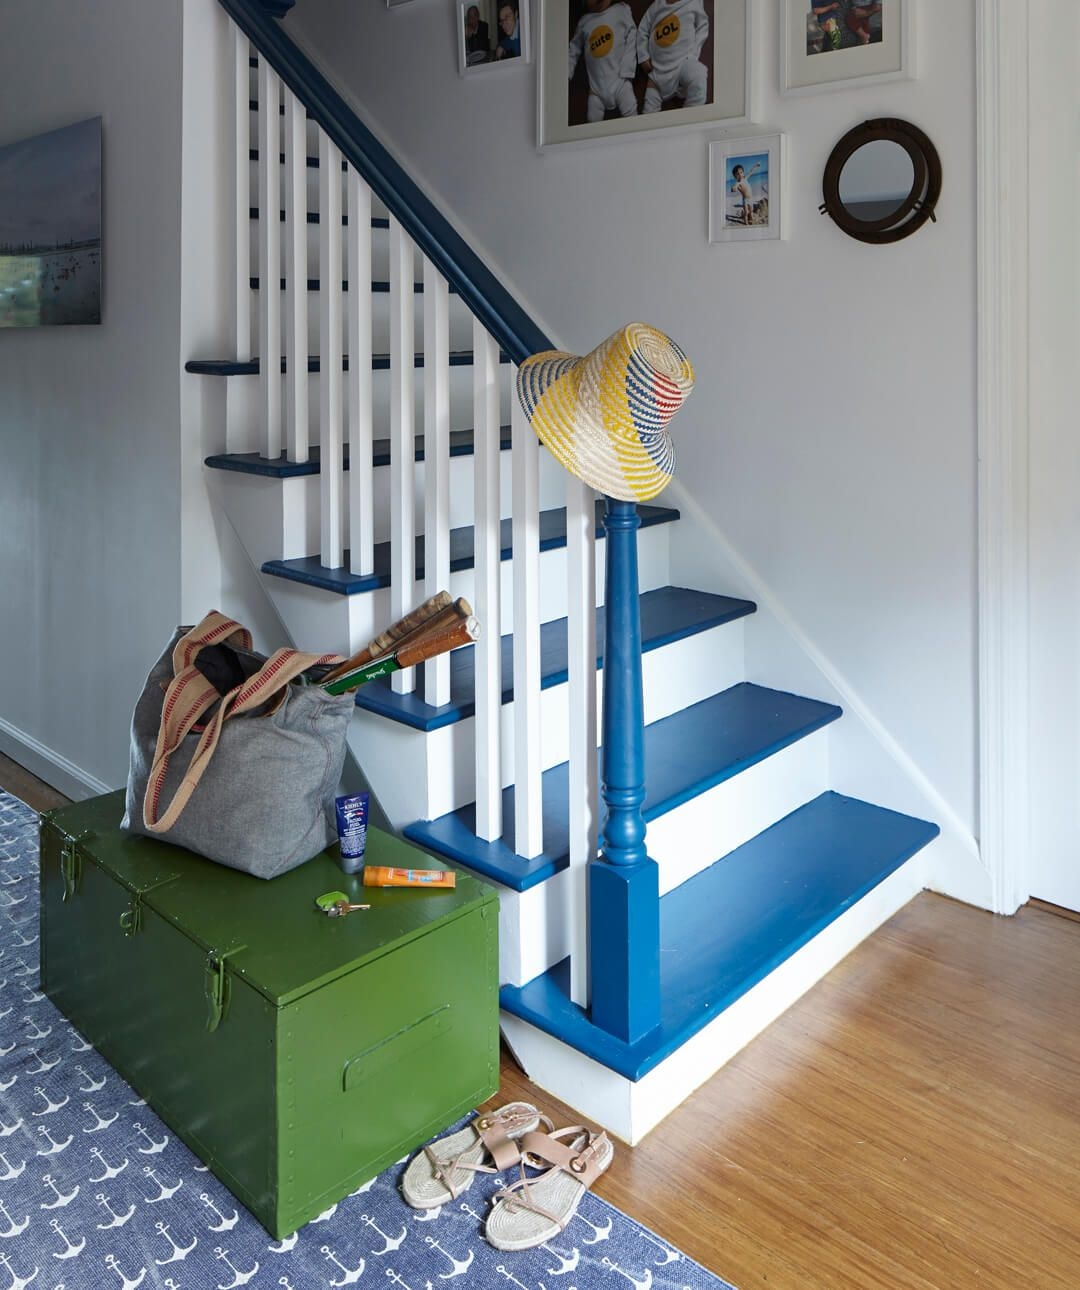 How To Paint Stairs The Right Way To Paint Stairs   Stair Wall Colour Design   Wood Wall   Before And After   Room Wall   Hall Colour Combination   Family